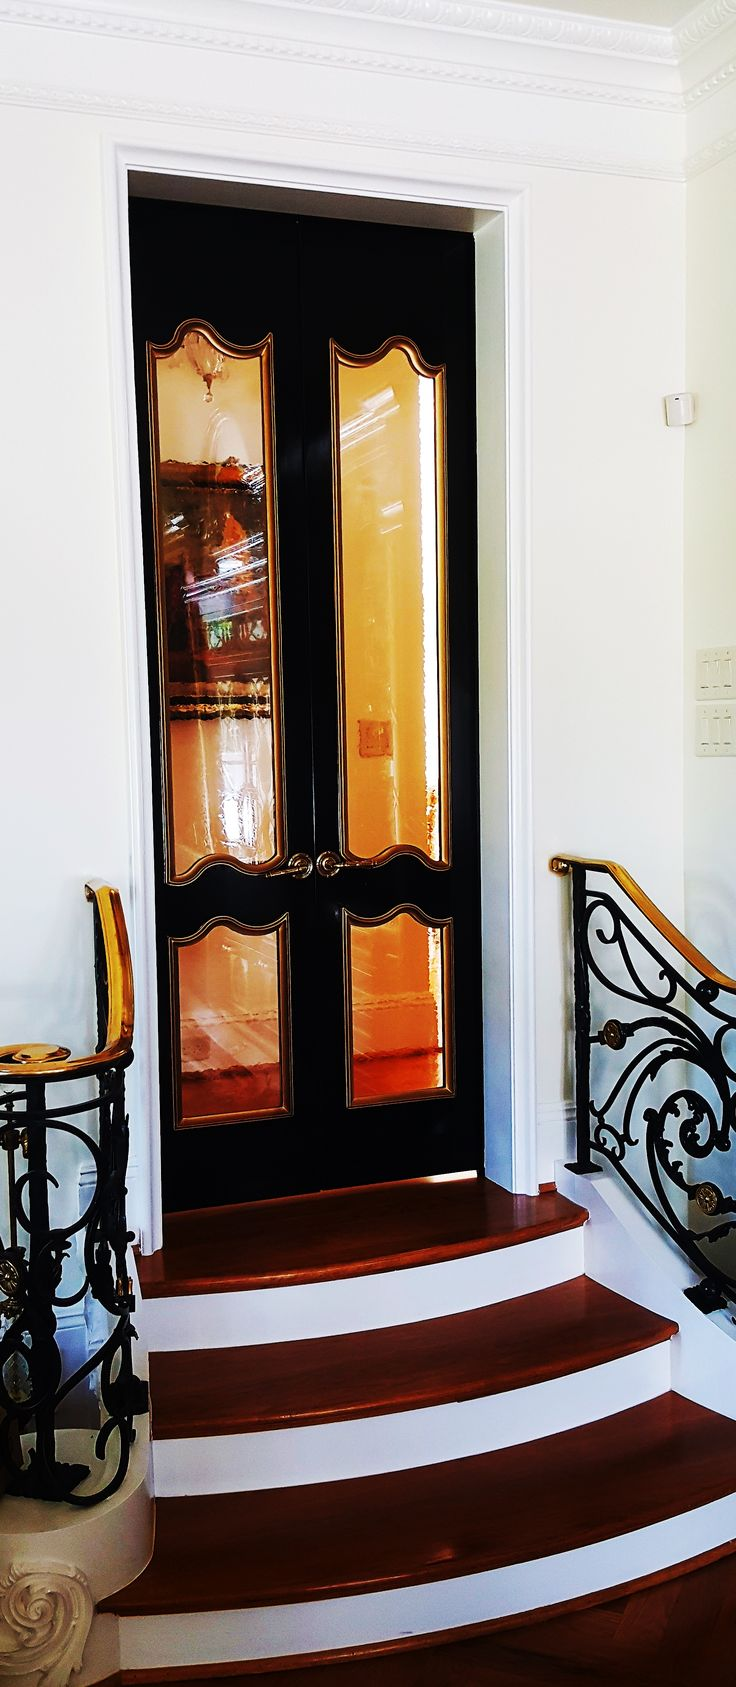 Every Special Room Deserves Special Doors, We Designed These With German  Antique Glass, High